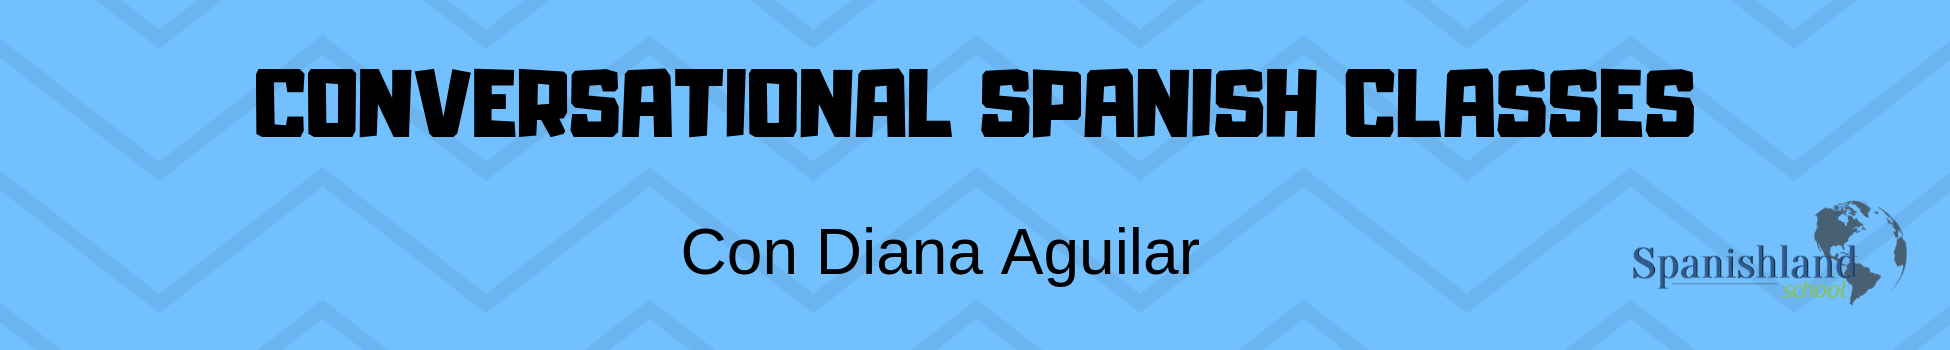 Book Diana Aguilar: Conversational Spanish Classes with Diana